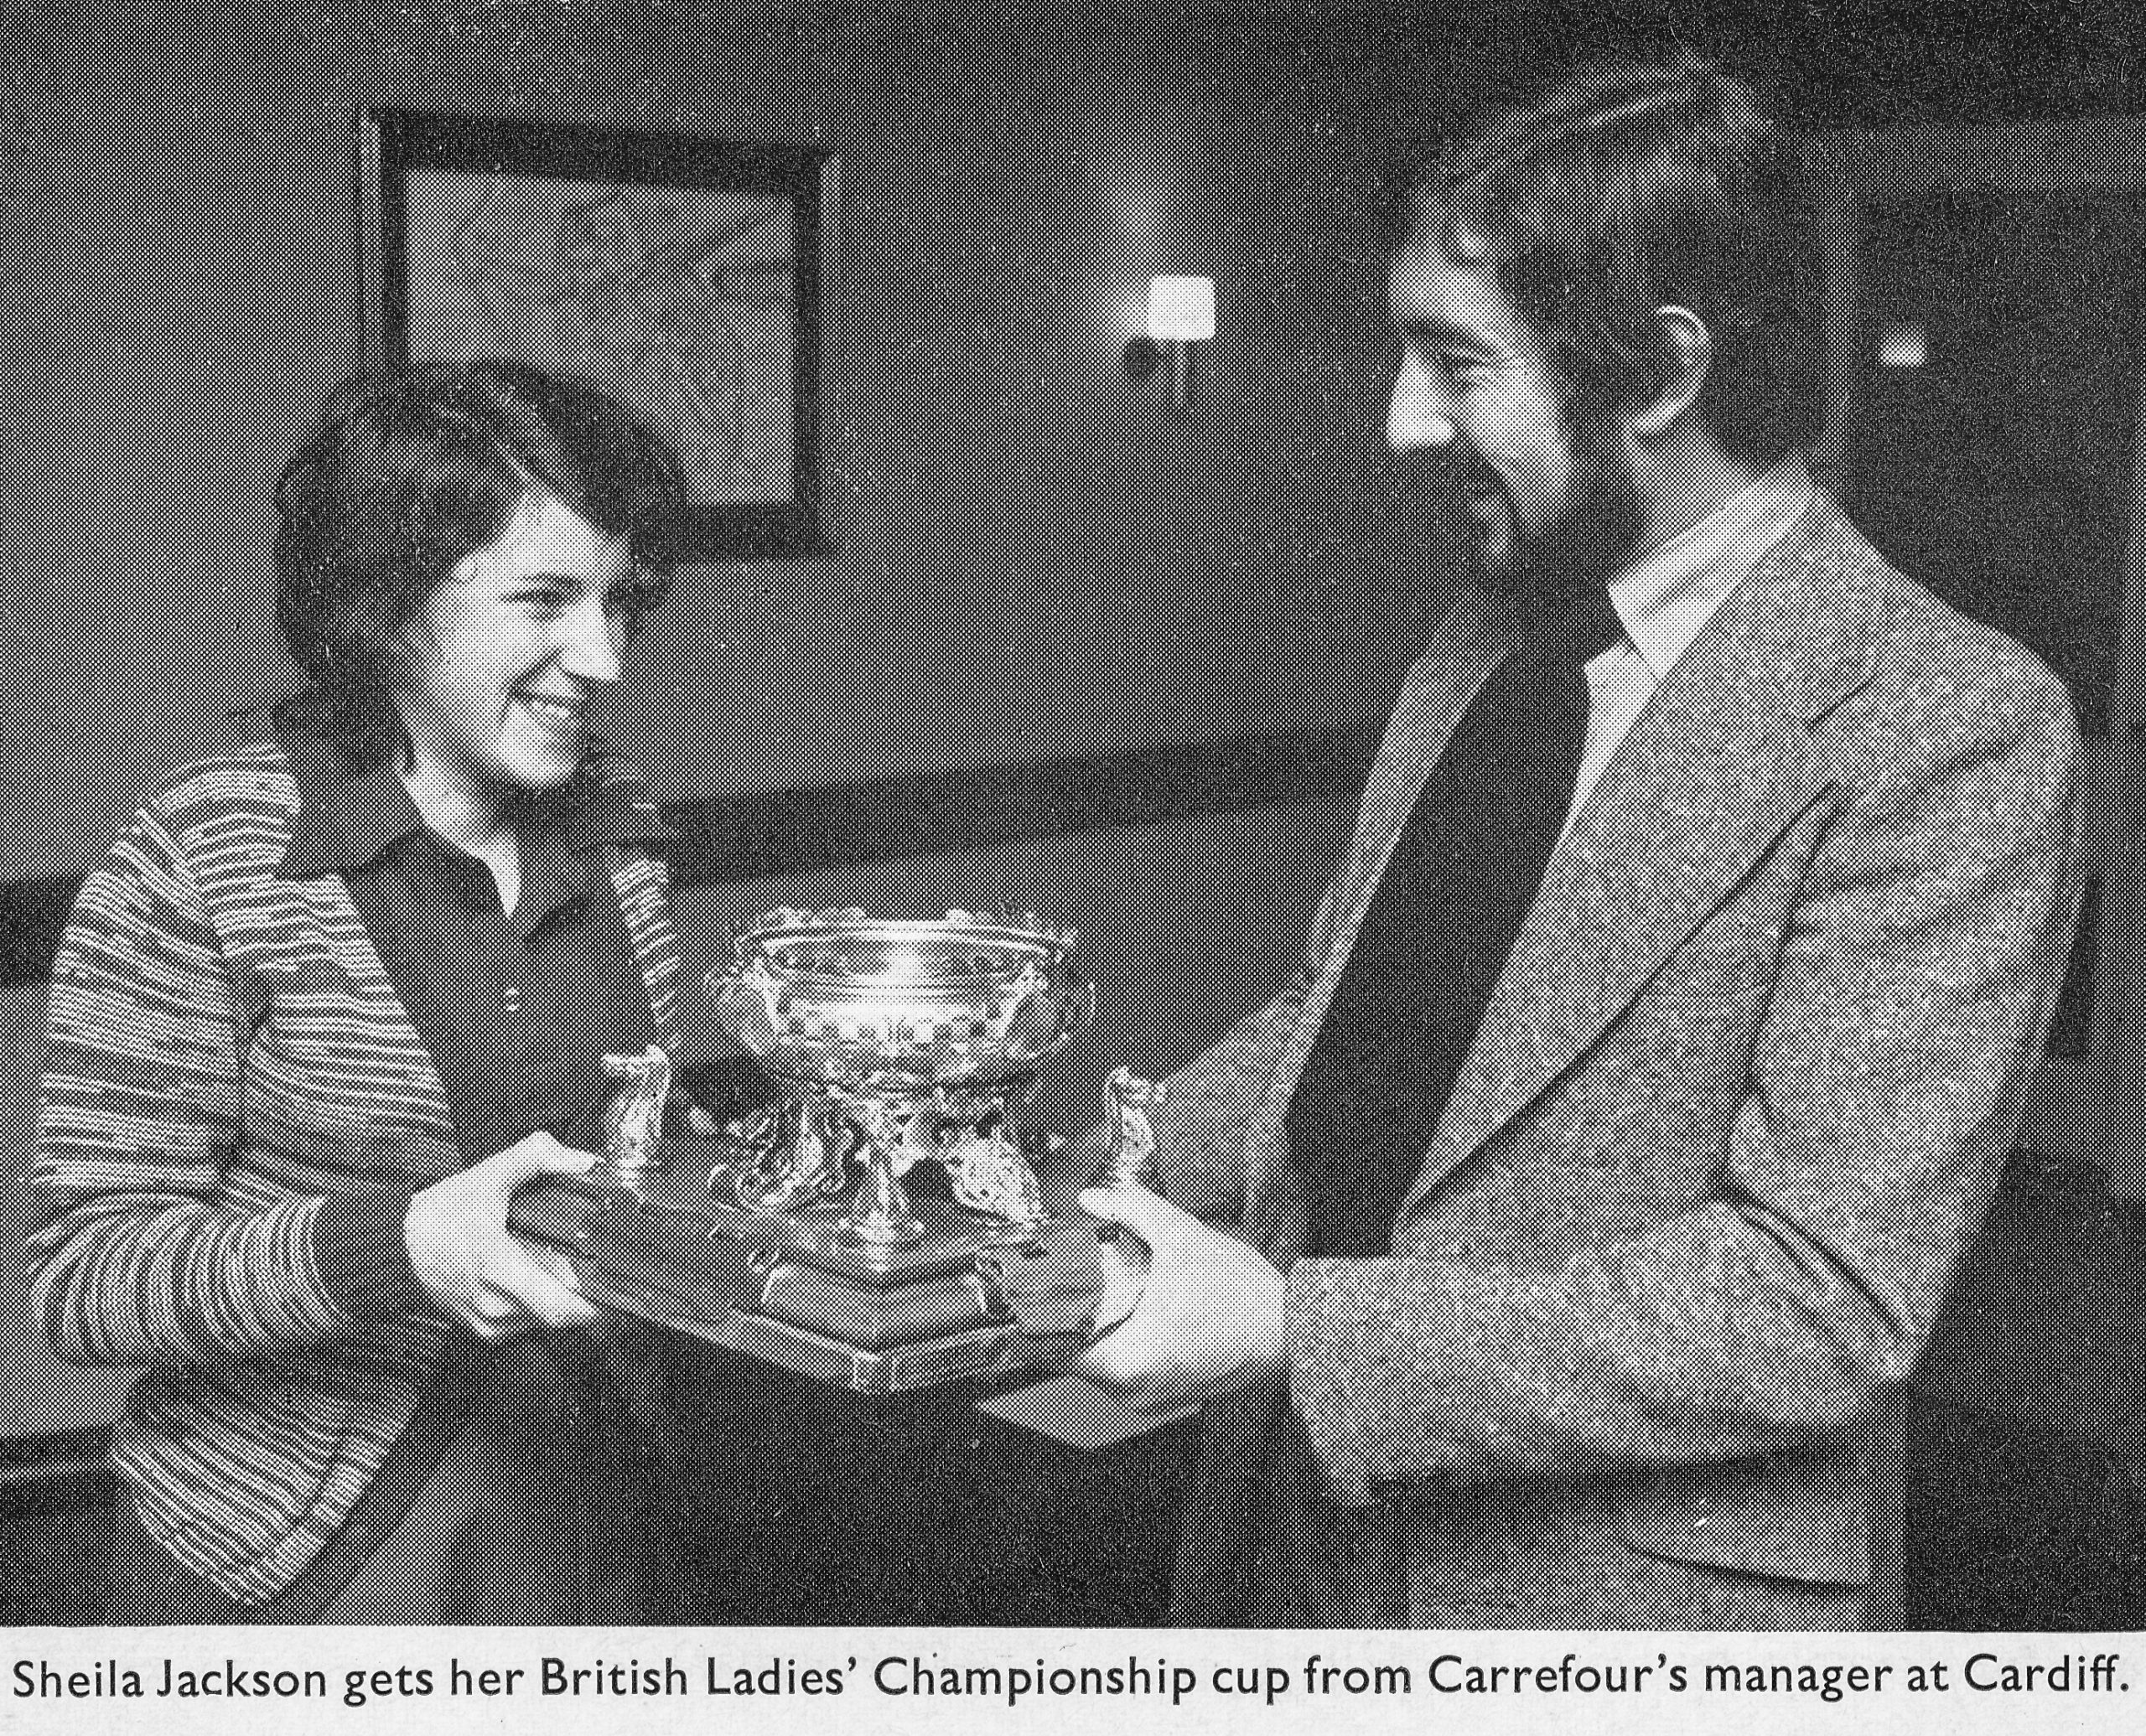 Sheila Jackson gets her British Ladies' Championship cup from Carrefour's Manager at Cardiff. Source : CHESS, Volume 41, Numbers 739-4, page 137.